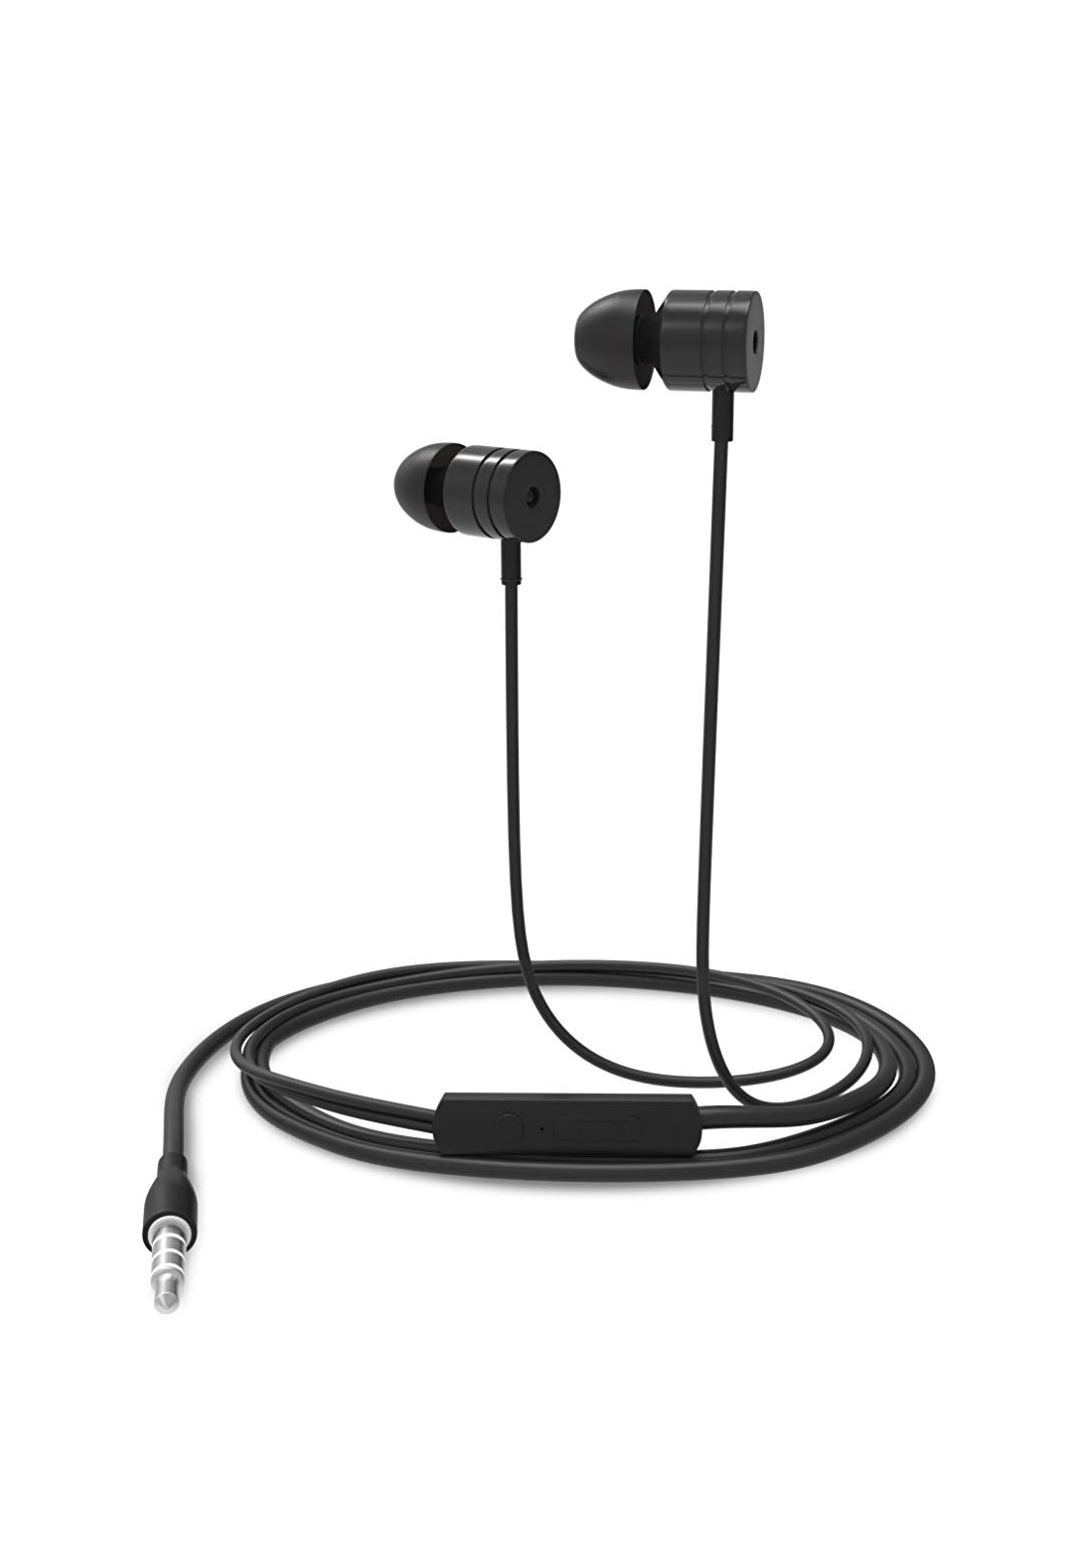 7 Best earphone under 300 with mic in India 2019